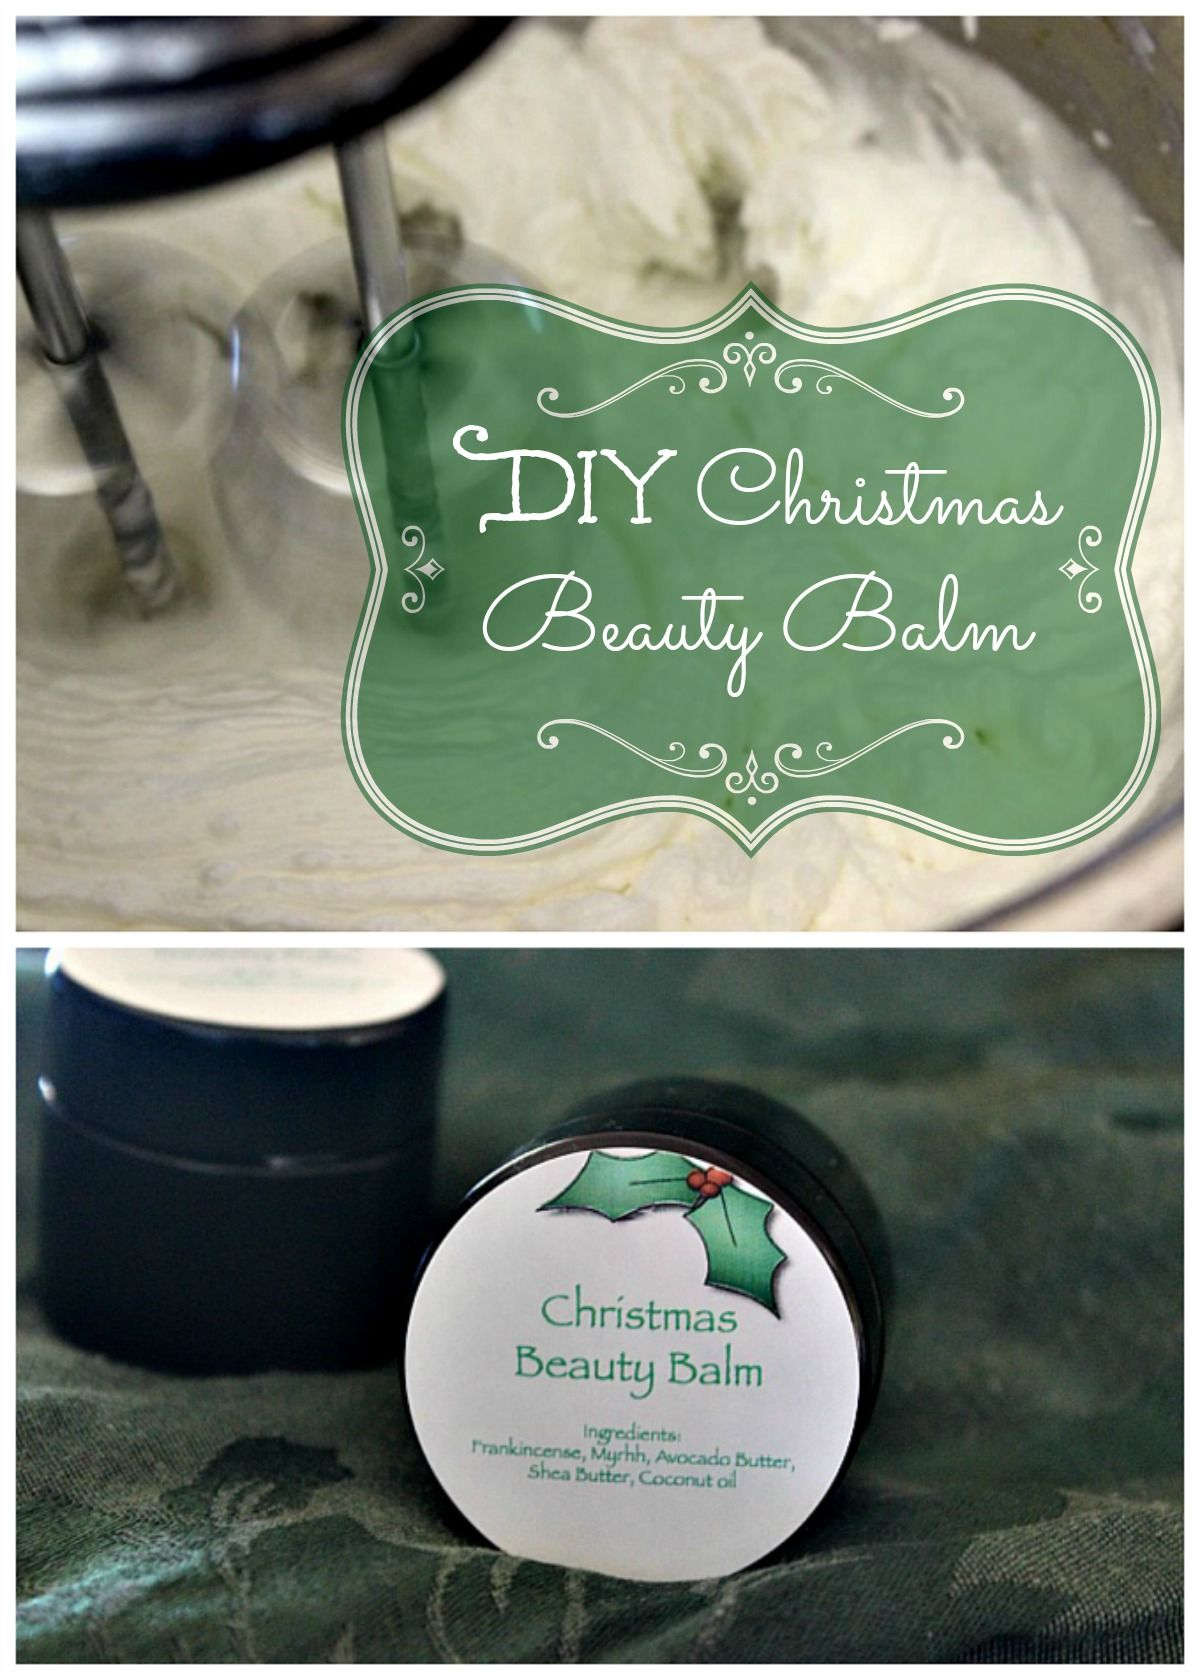 Looking for natural Christmas gift ideas? Consider this luxurious, simple Christmas Beauty Balm with frankincense and myrrh! #diychristmasgifts